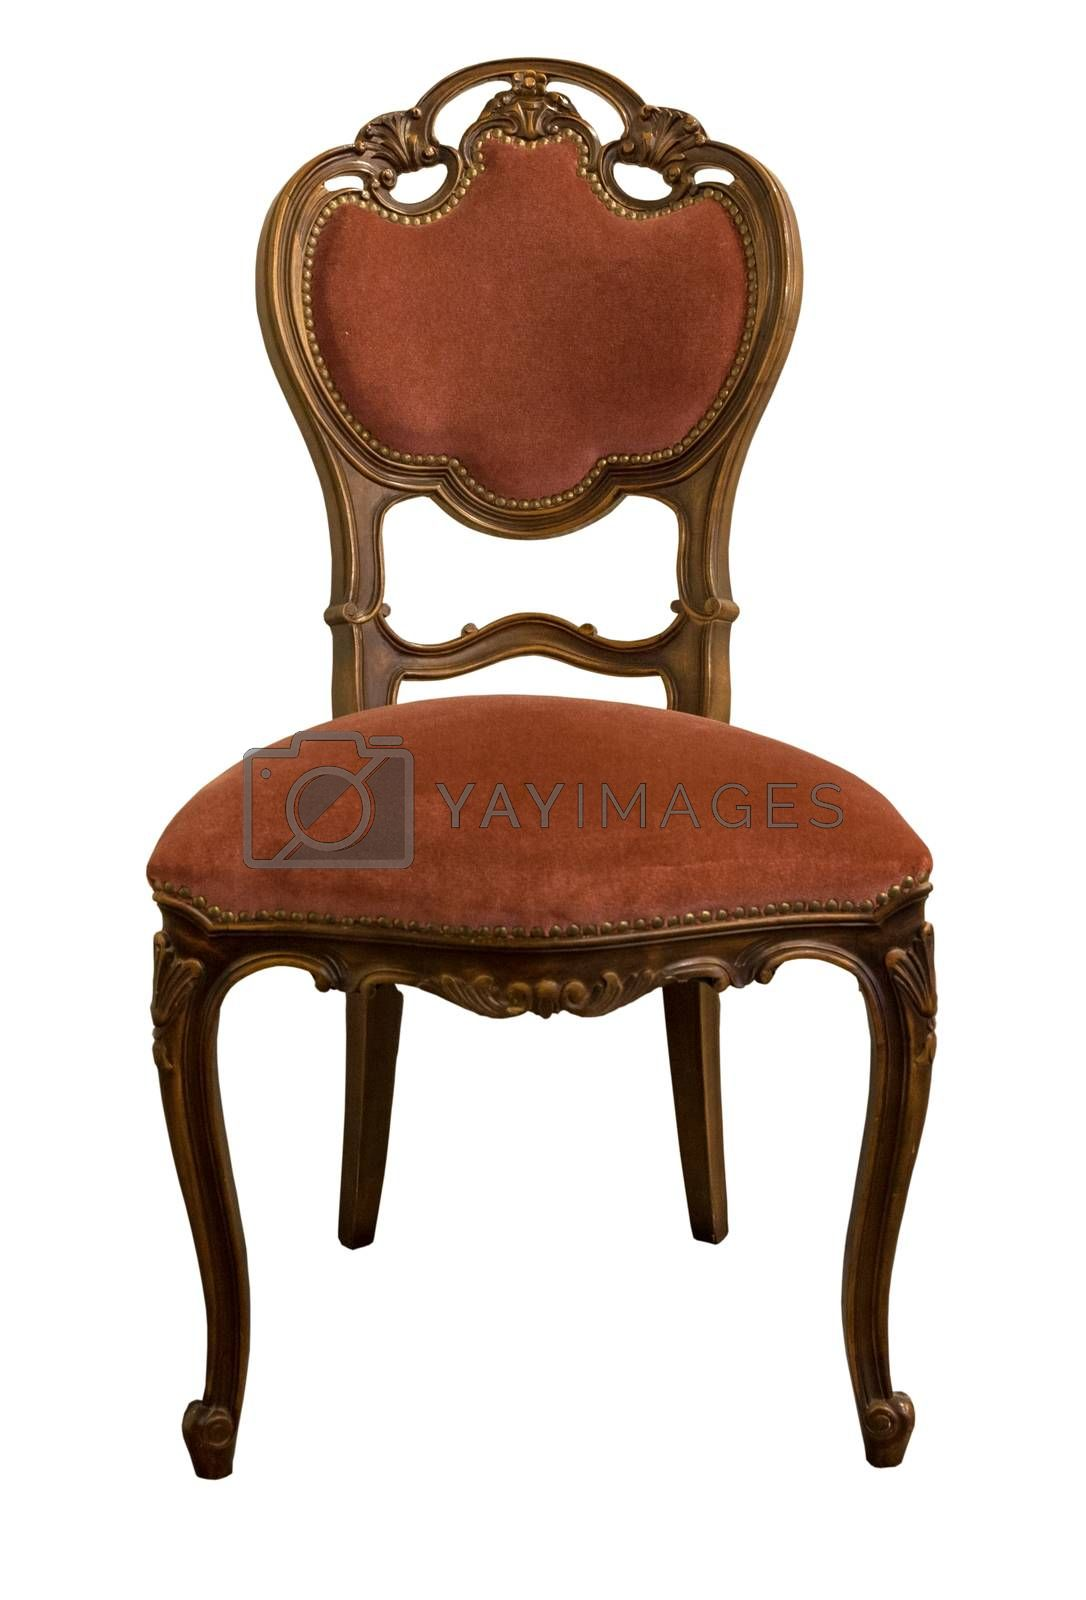 French XIX century antique furniture made from oak wood isolated on white.